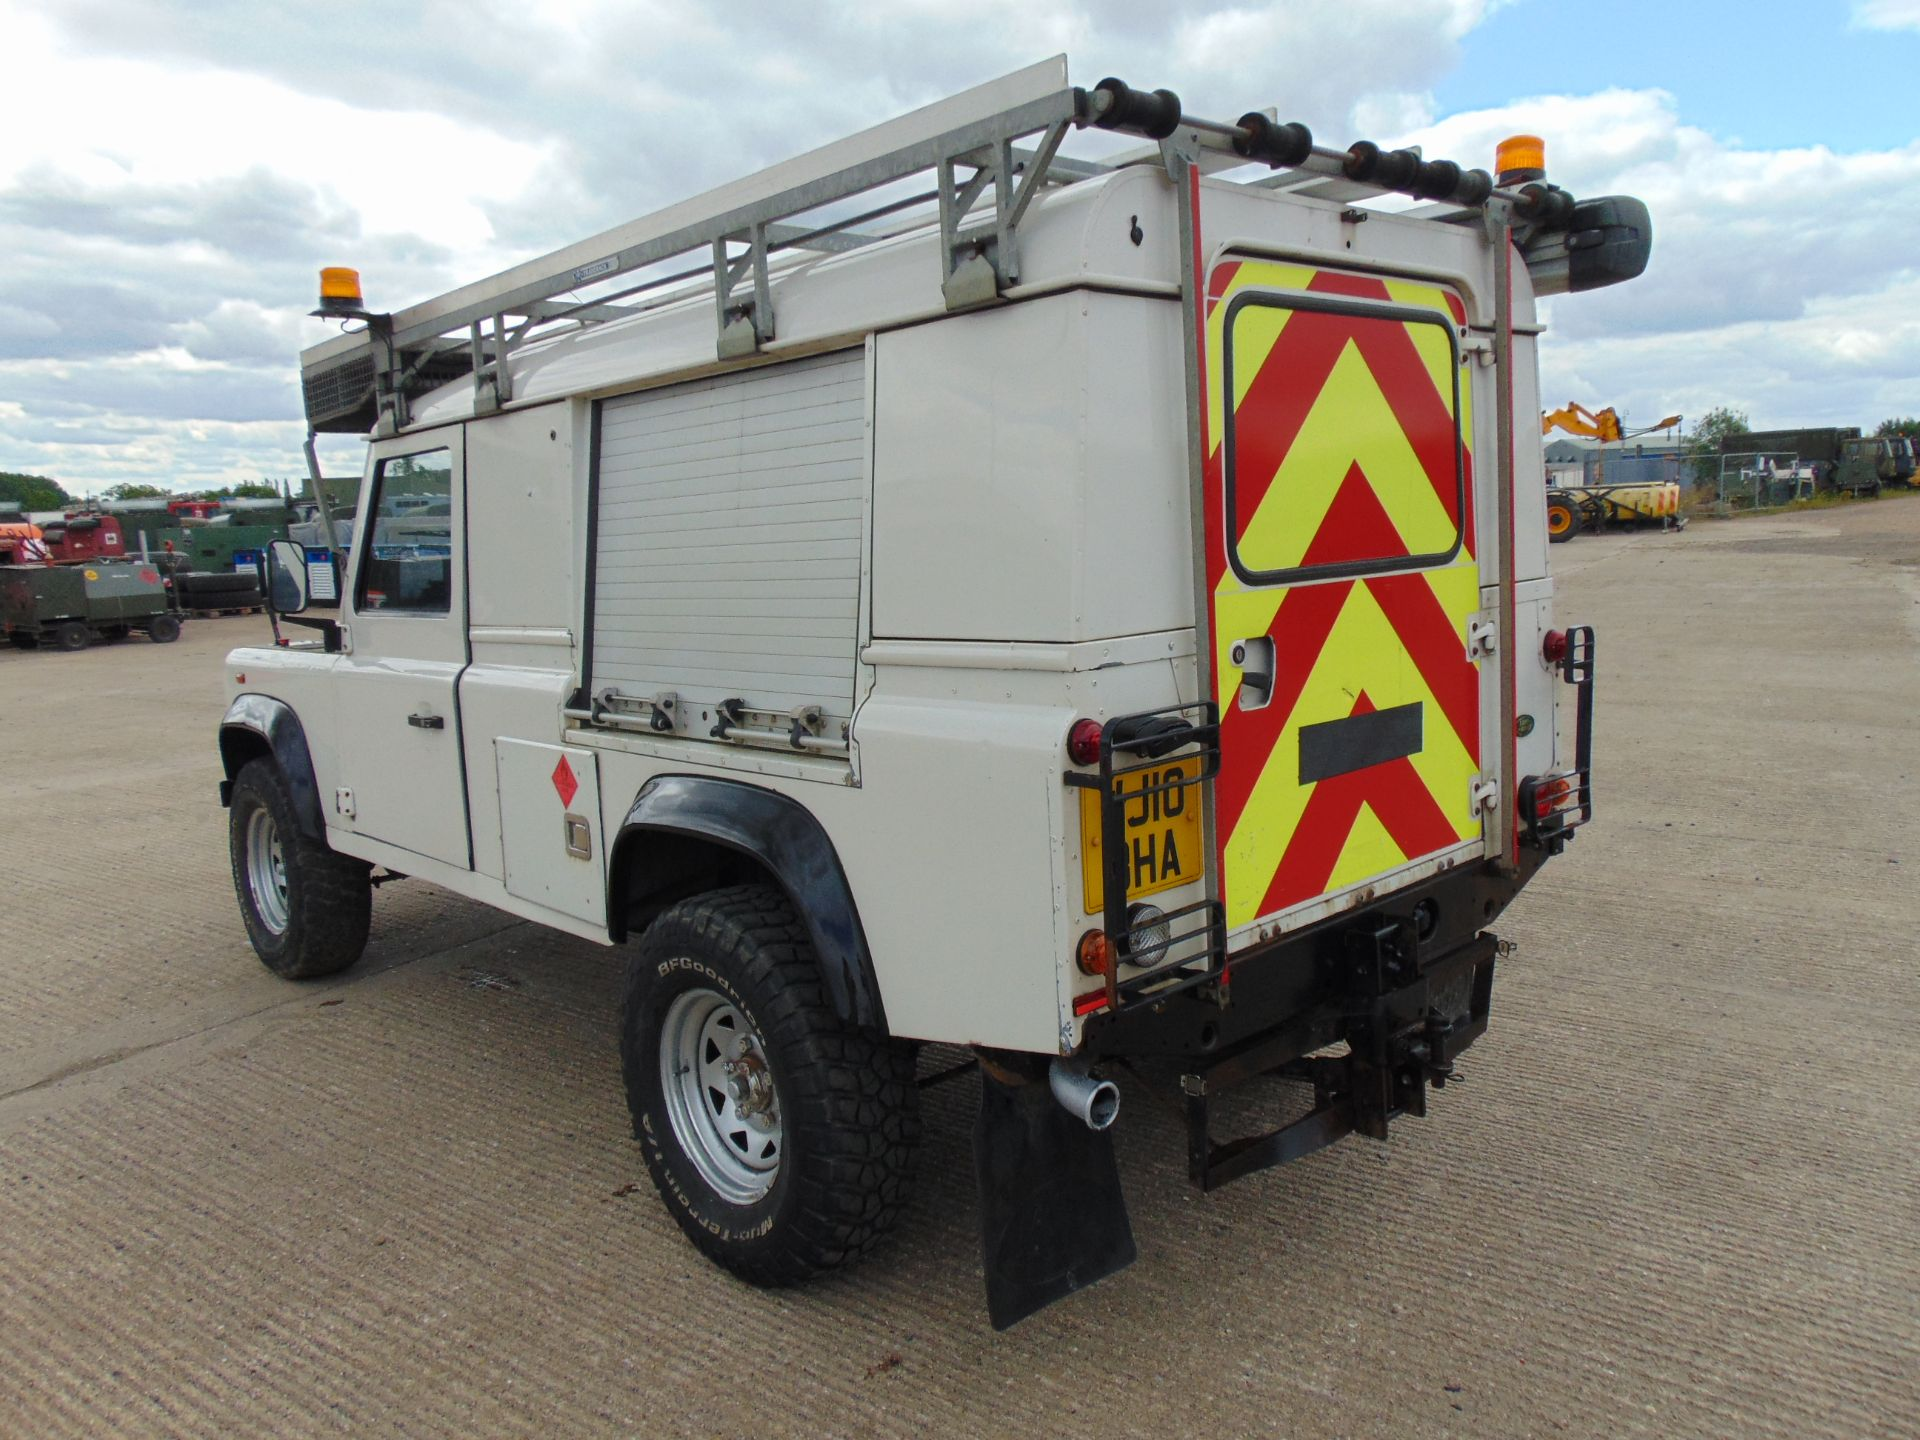 Lot 6 - Land Rover Defender 110 Puma Hardtop 4x4 Special Utility (Mobile Workshop) complete with Winch